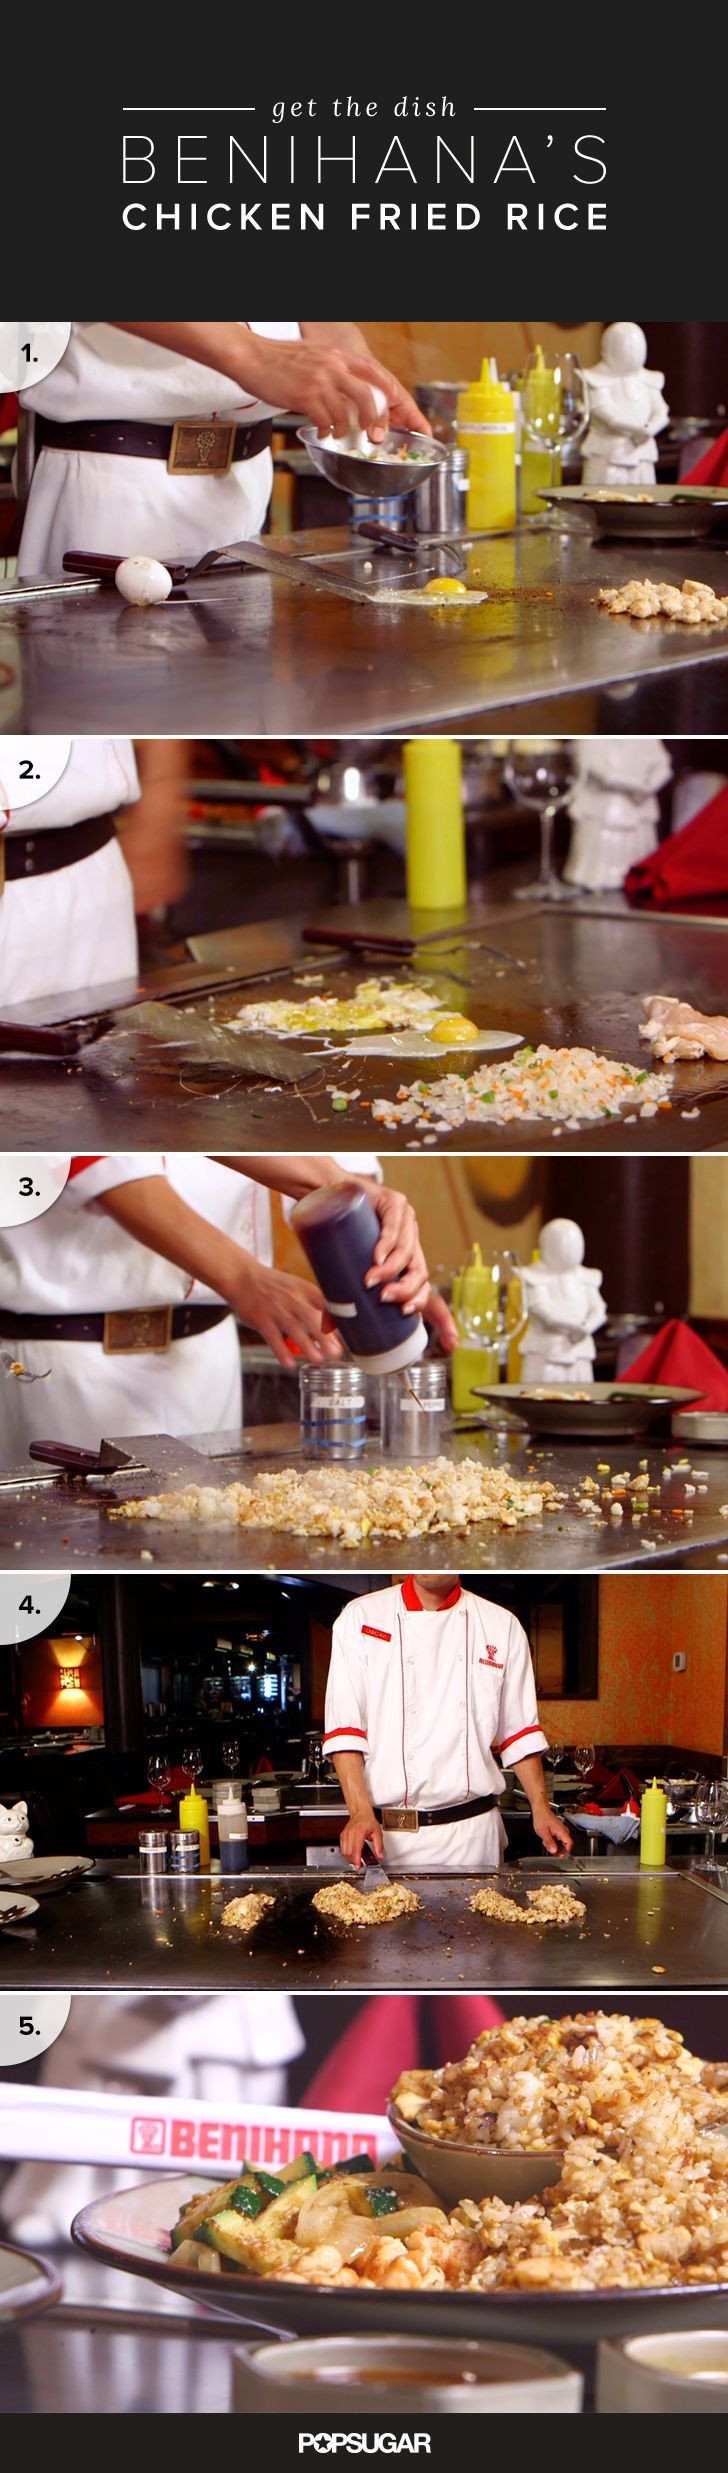 You may not have one of Benihana's teppanyaki tables — the flat grill top on which their signature dishes are cooked — at home, but that doesn't mean you can't get in on the fun! In this episode of Get the Dish, Benihana chef Oscar Briseno shows us how to master the restaurant's chicken fried rice and demonstrates how a few of the iconic tricks and flourishes are performed.